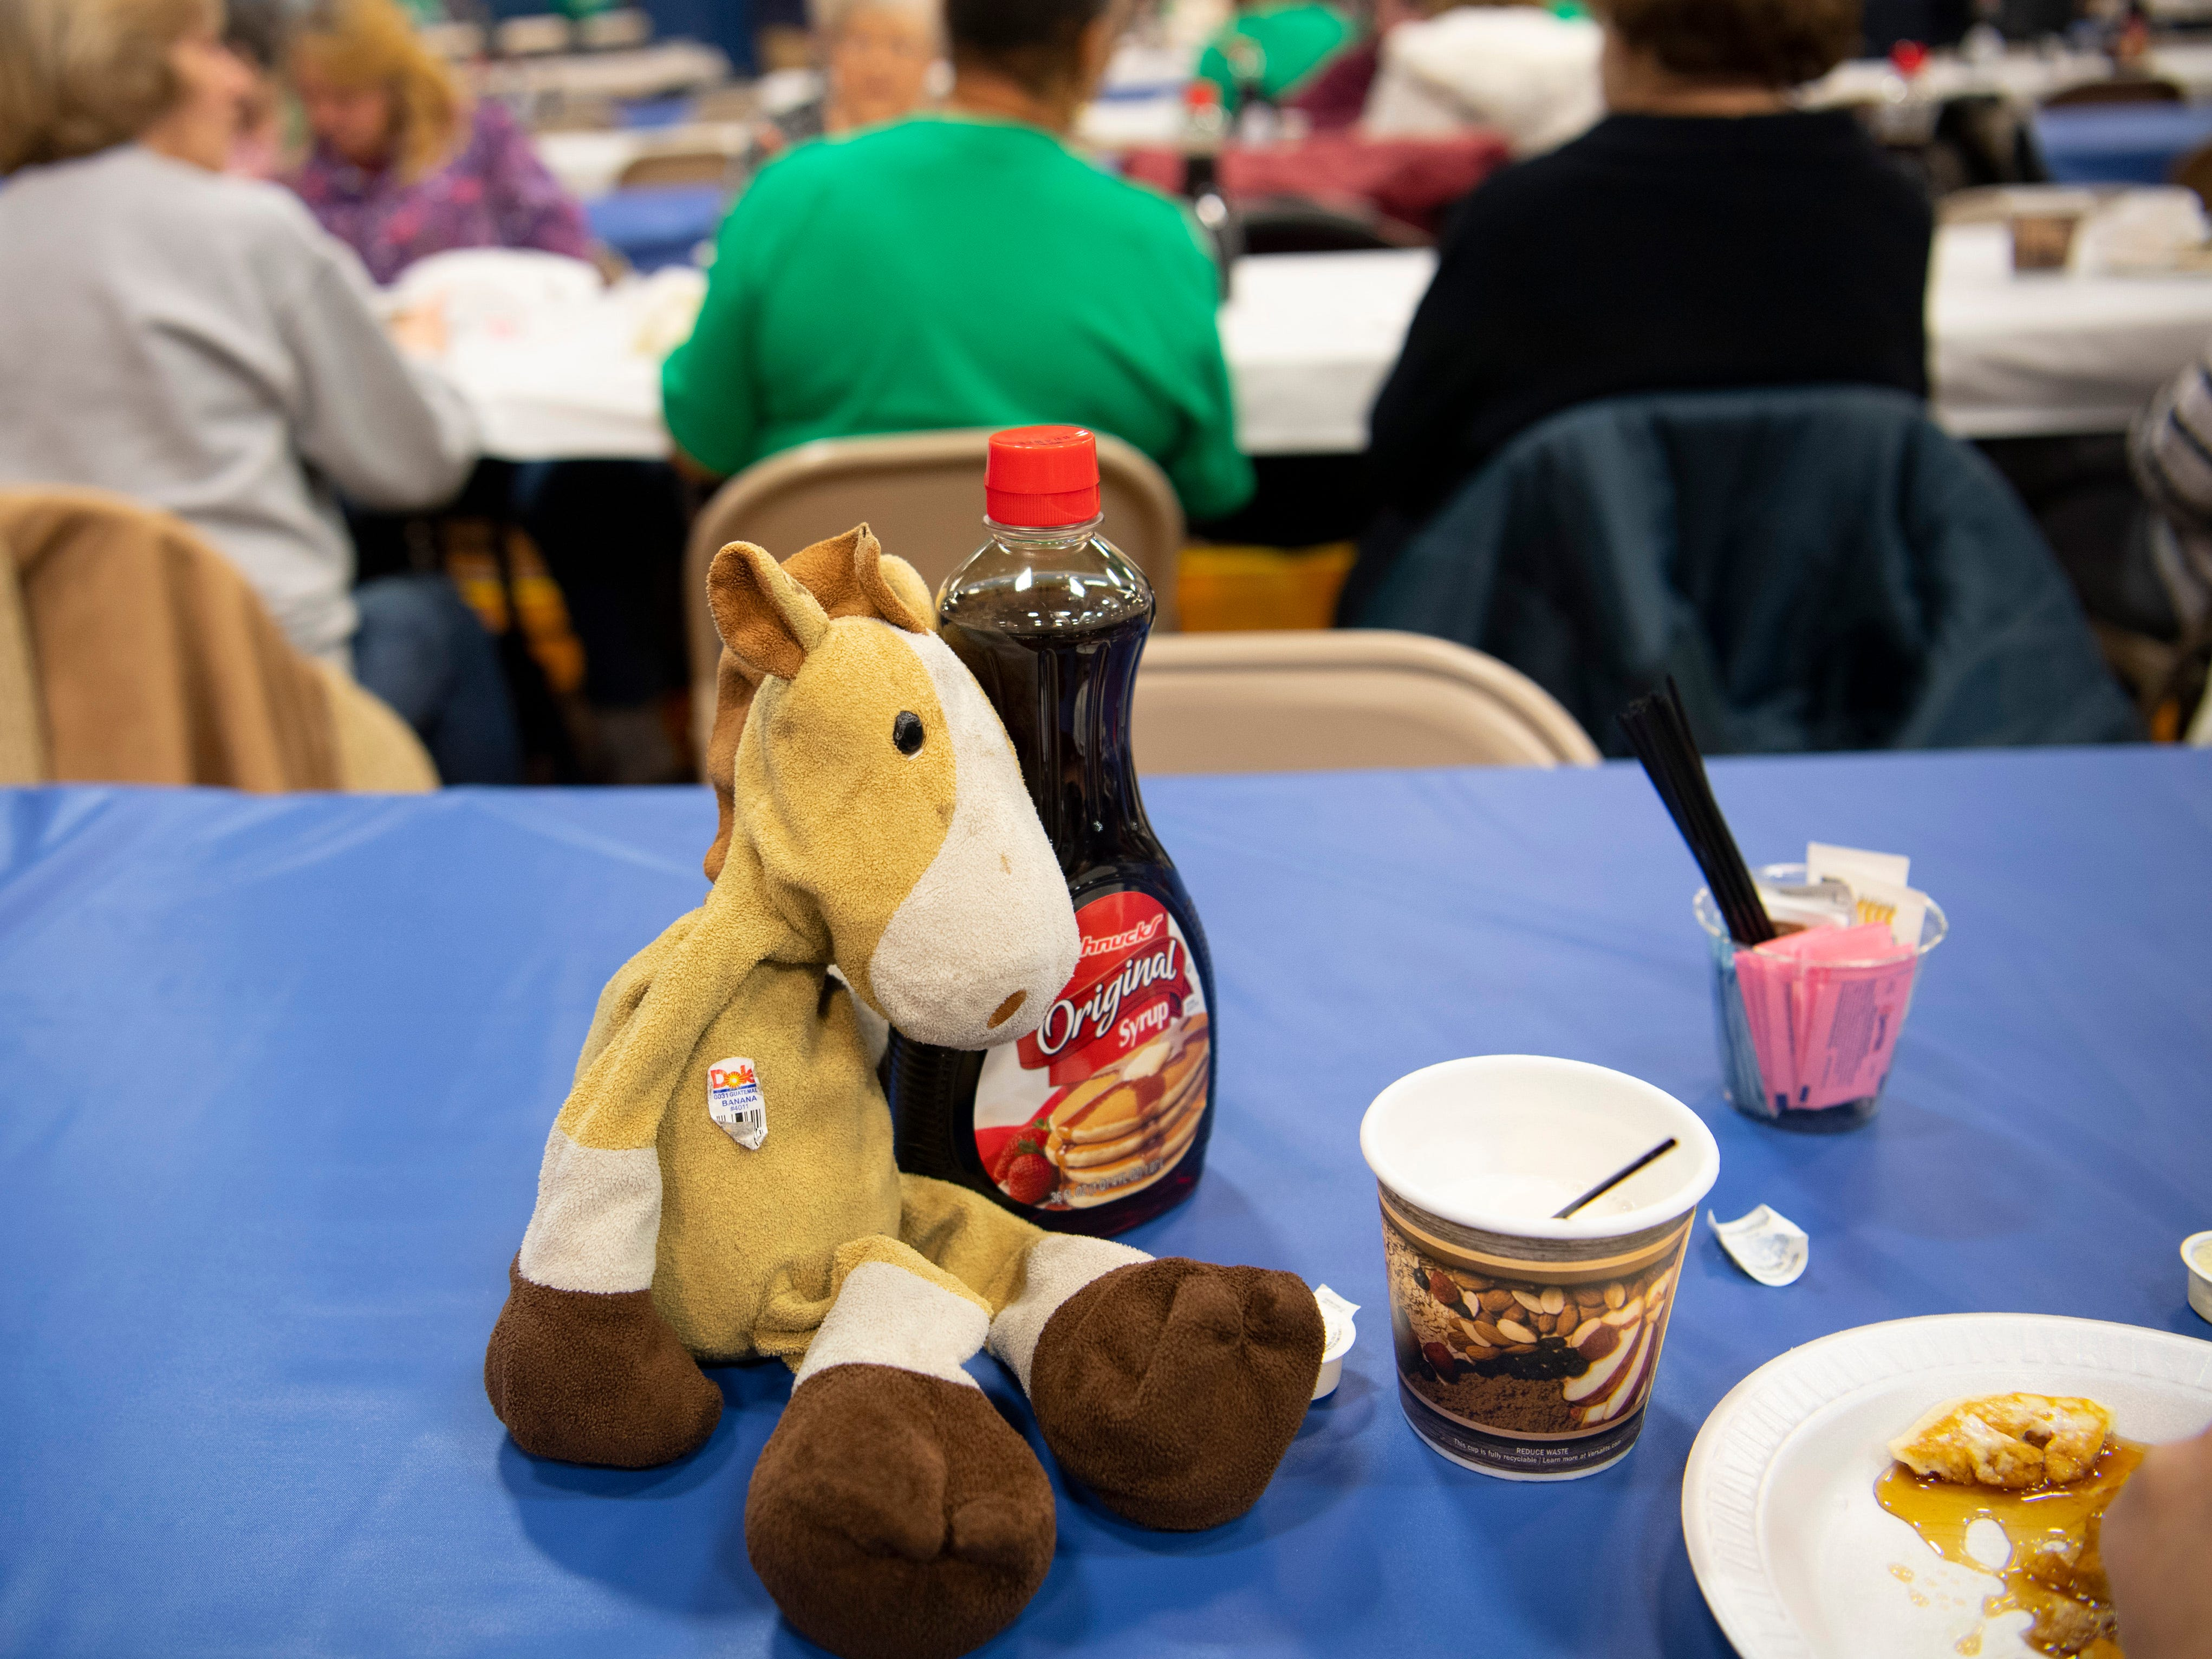 Mr. Horse, Ethan Vaupel's travel companion, kills time with a bottle of syrup as his 7-year-old buddy finishes his pancakes at the 31st Annual Pancake Days at the Downtown YMCA Friday morning. The pancakes, sausage, milk, coffee and orange juice will be served up again Saturday from 6 a.m. to 1 p.m. and Sunday from 8 a.m. to 1 p.m.